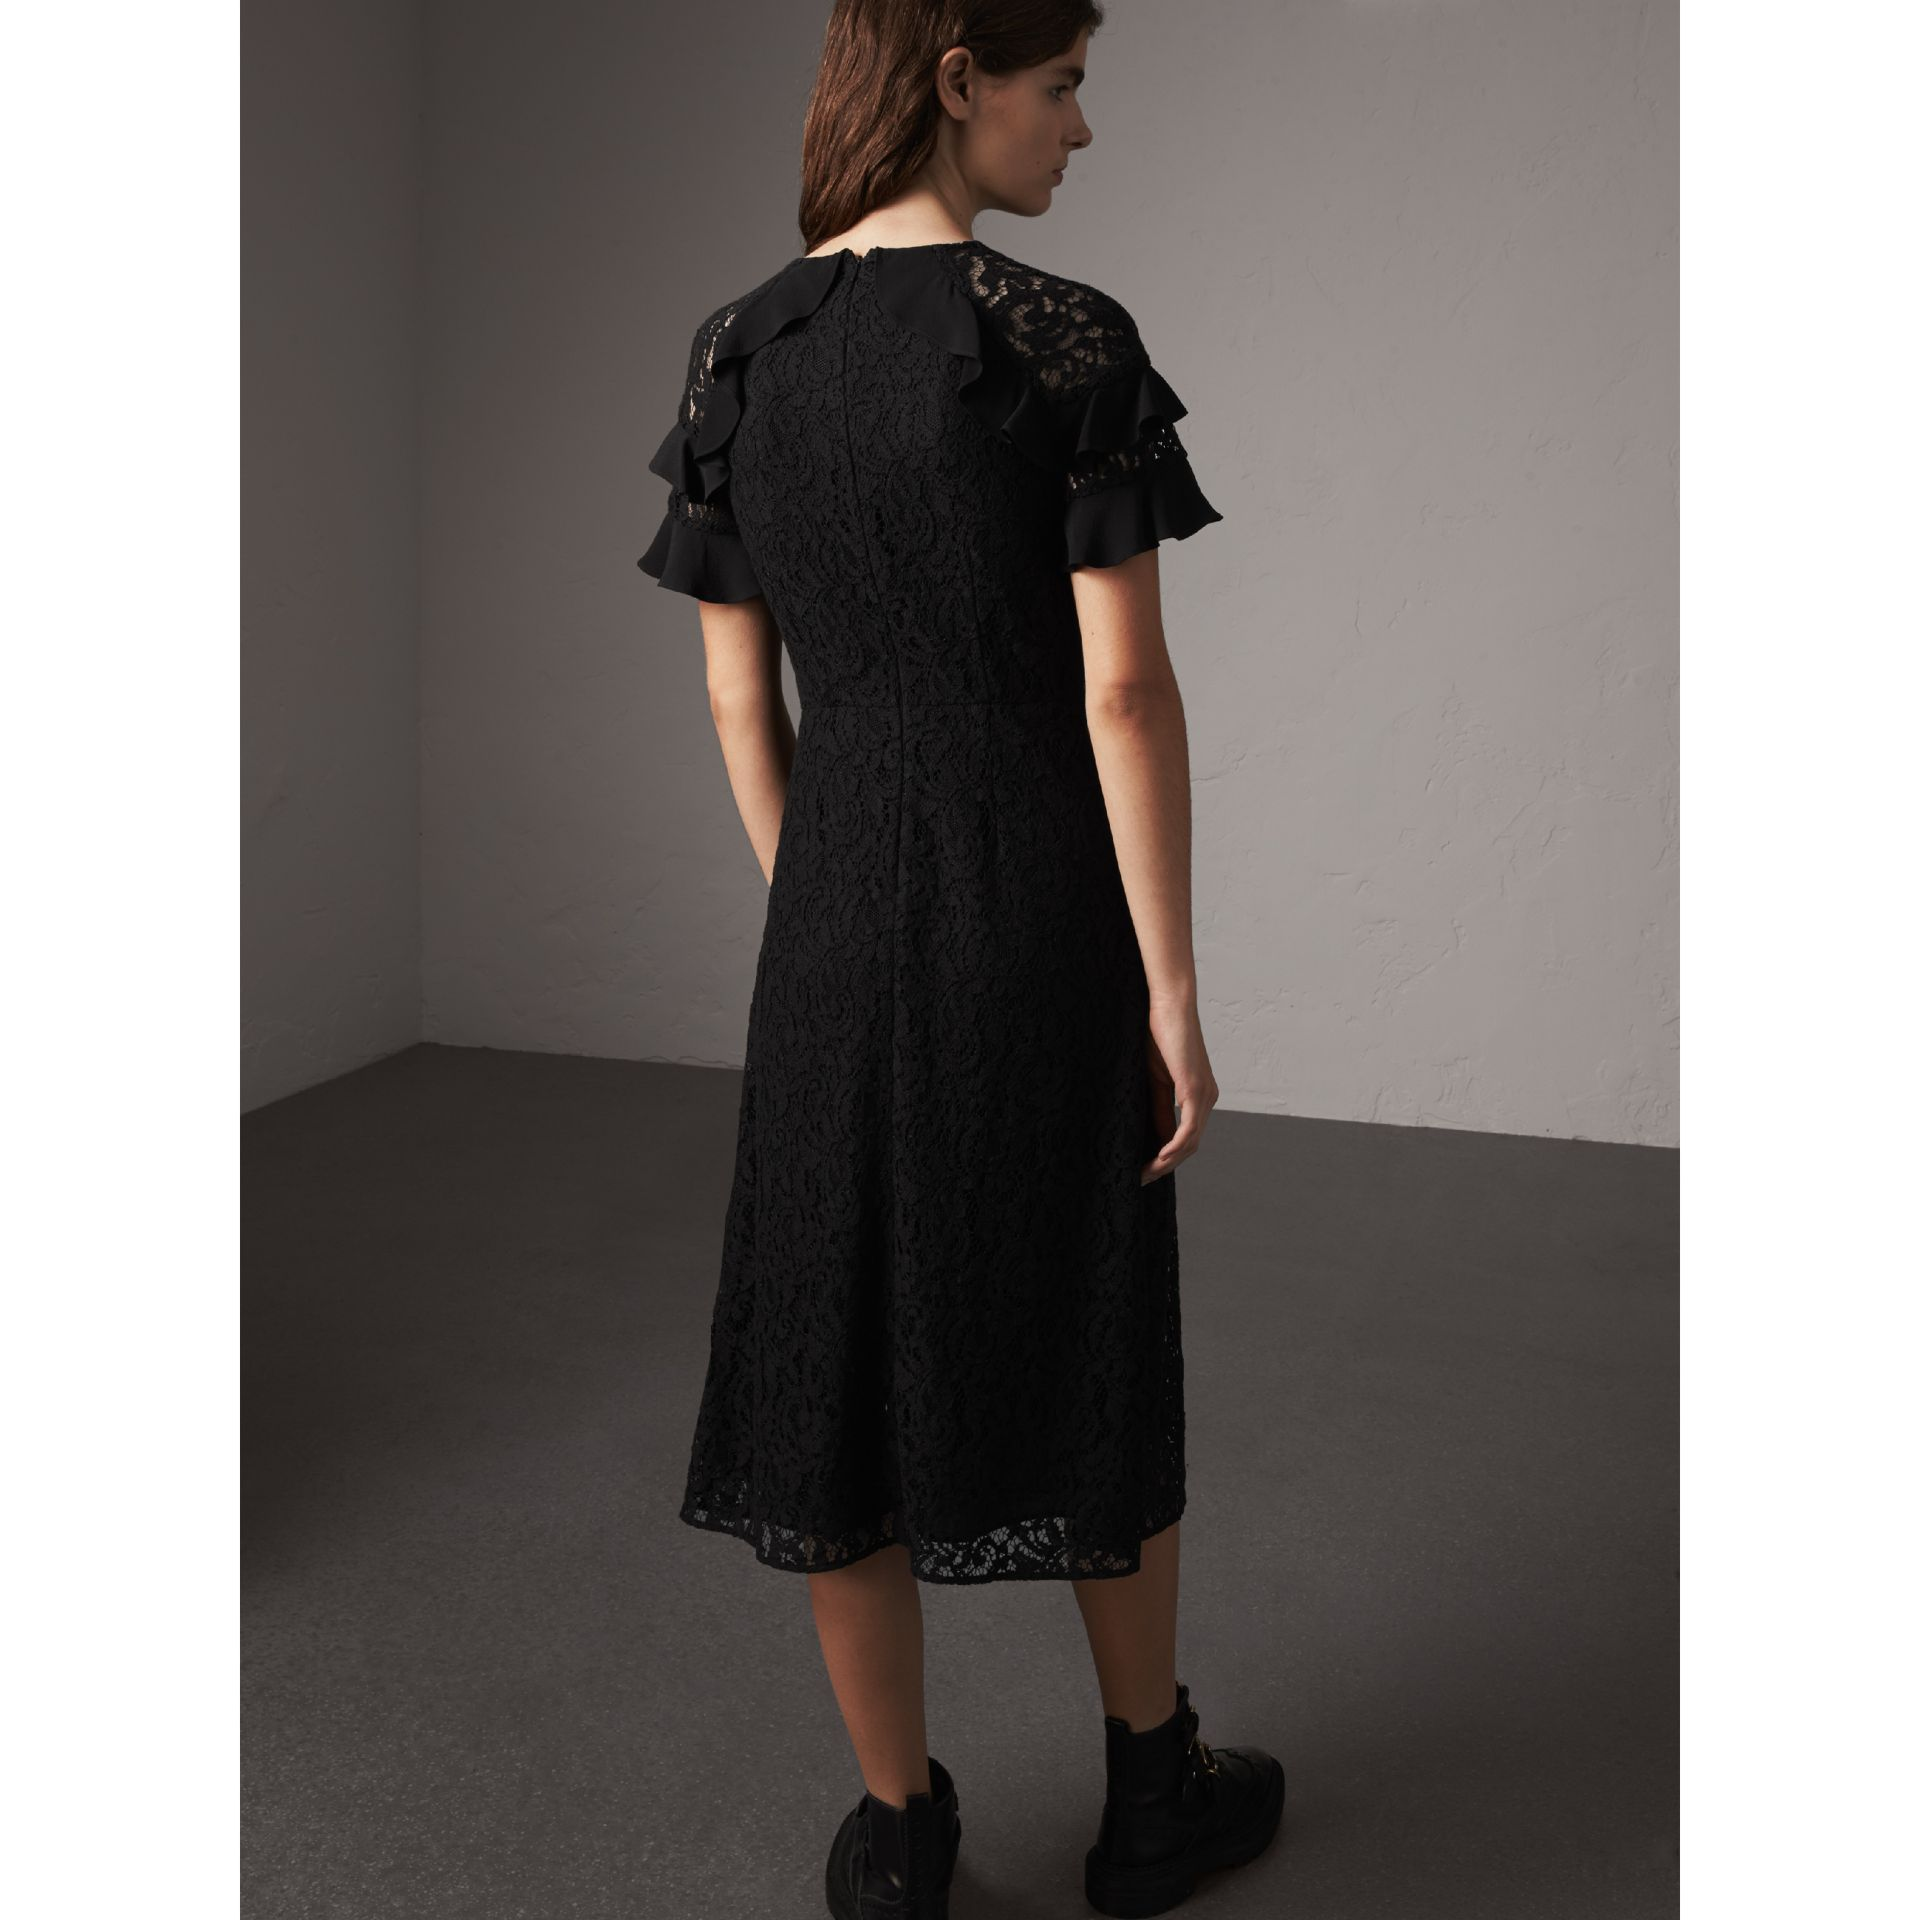 Ruffle Detail Floral Lace Dress in Black - Women | Burberry Singapore - gallery image 3